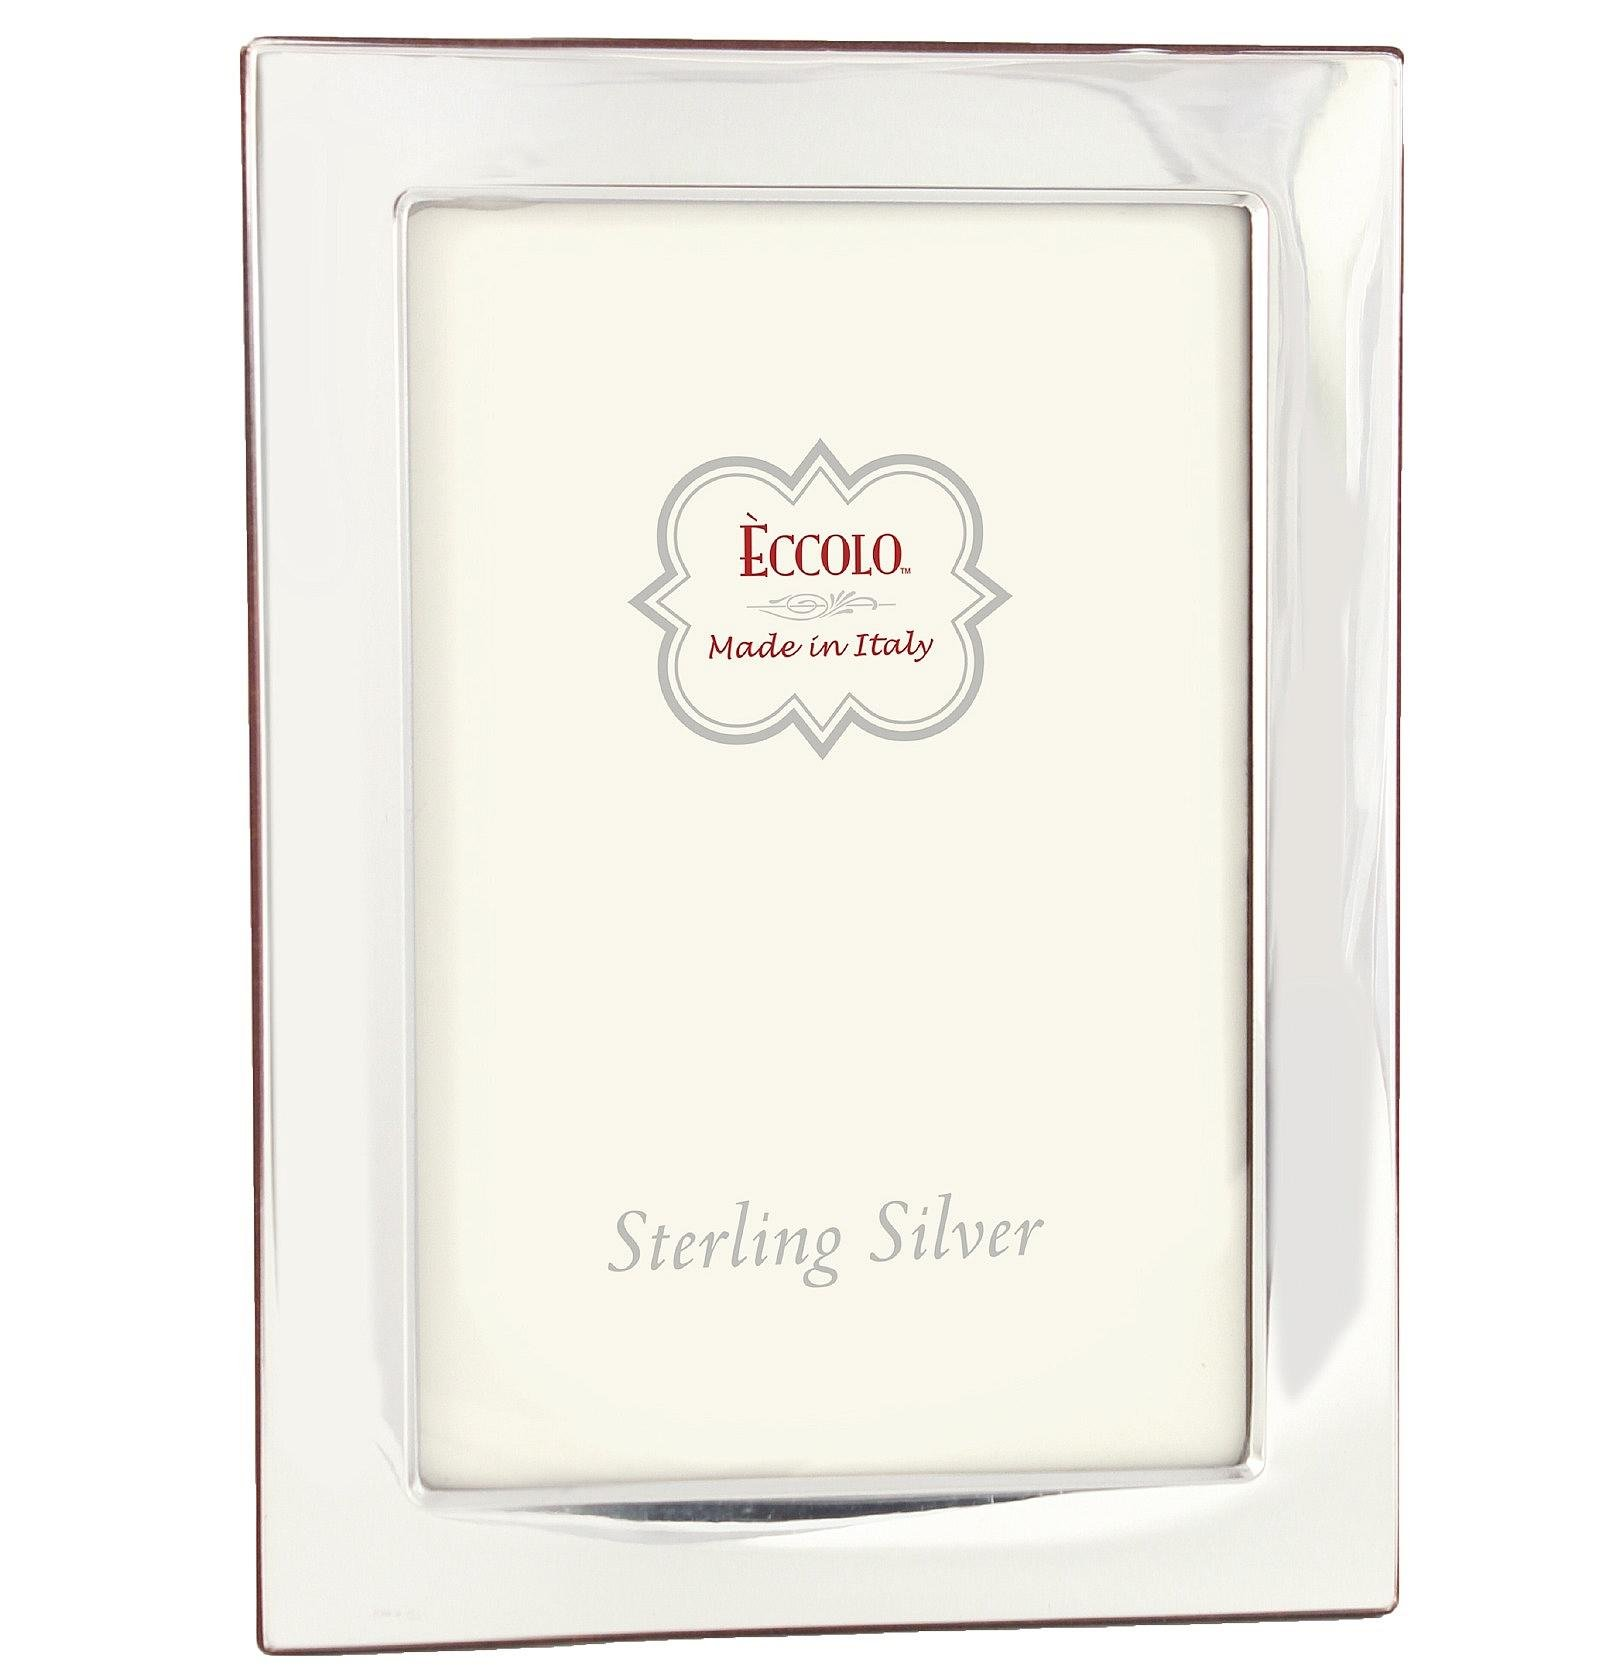 Eccolo Sterling Silver Frame, Holds 5 by 7-Inch Photo, Madison